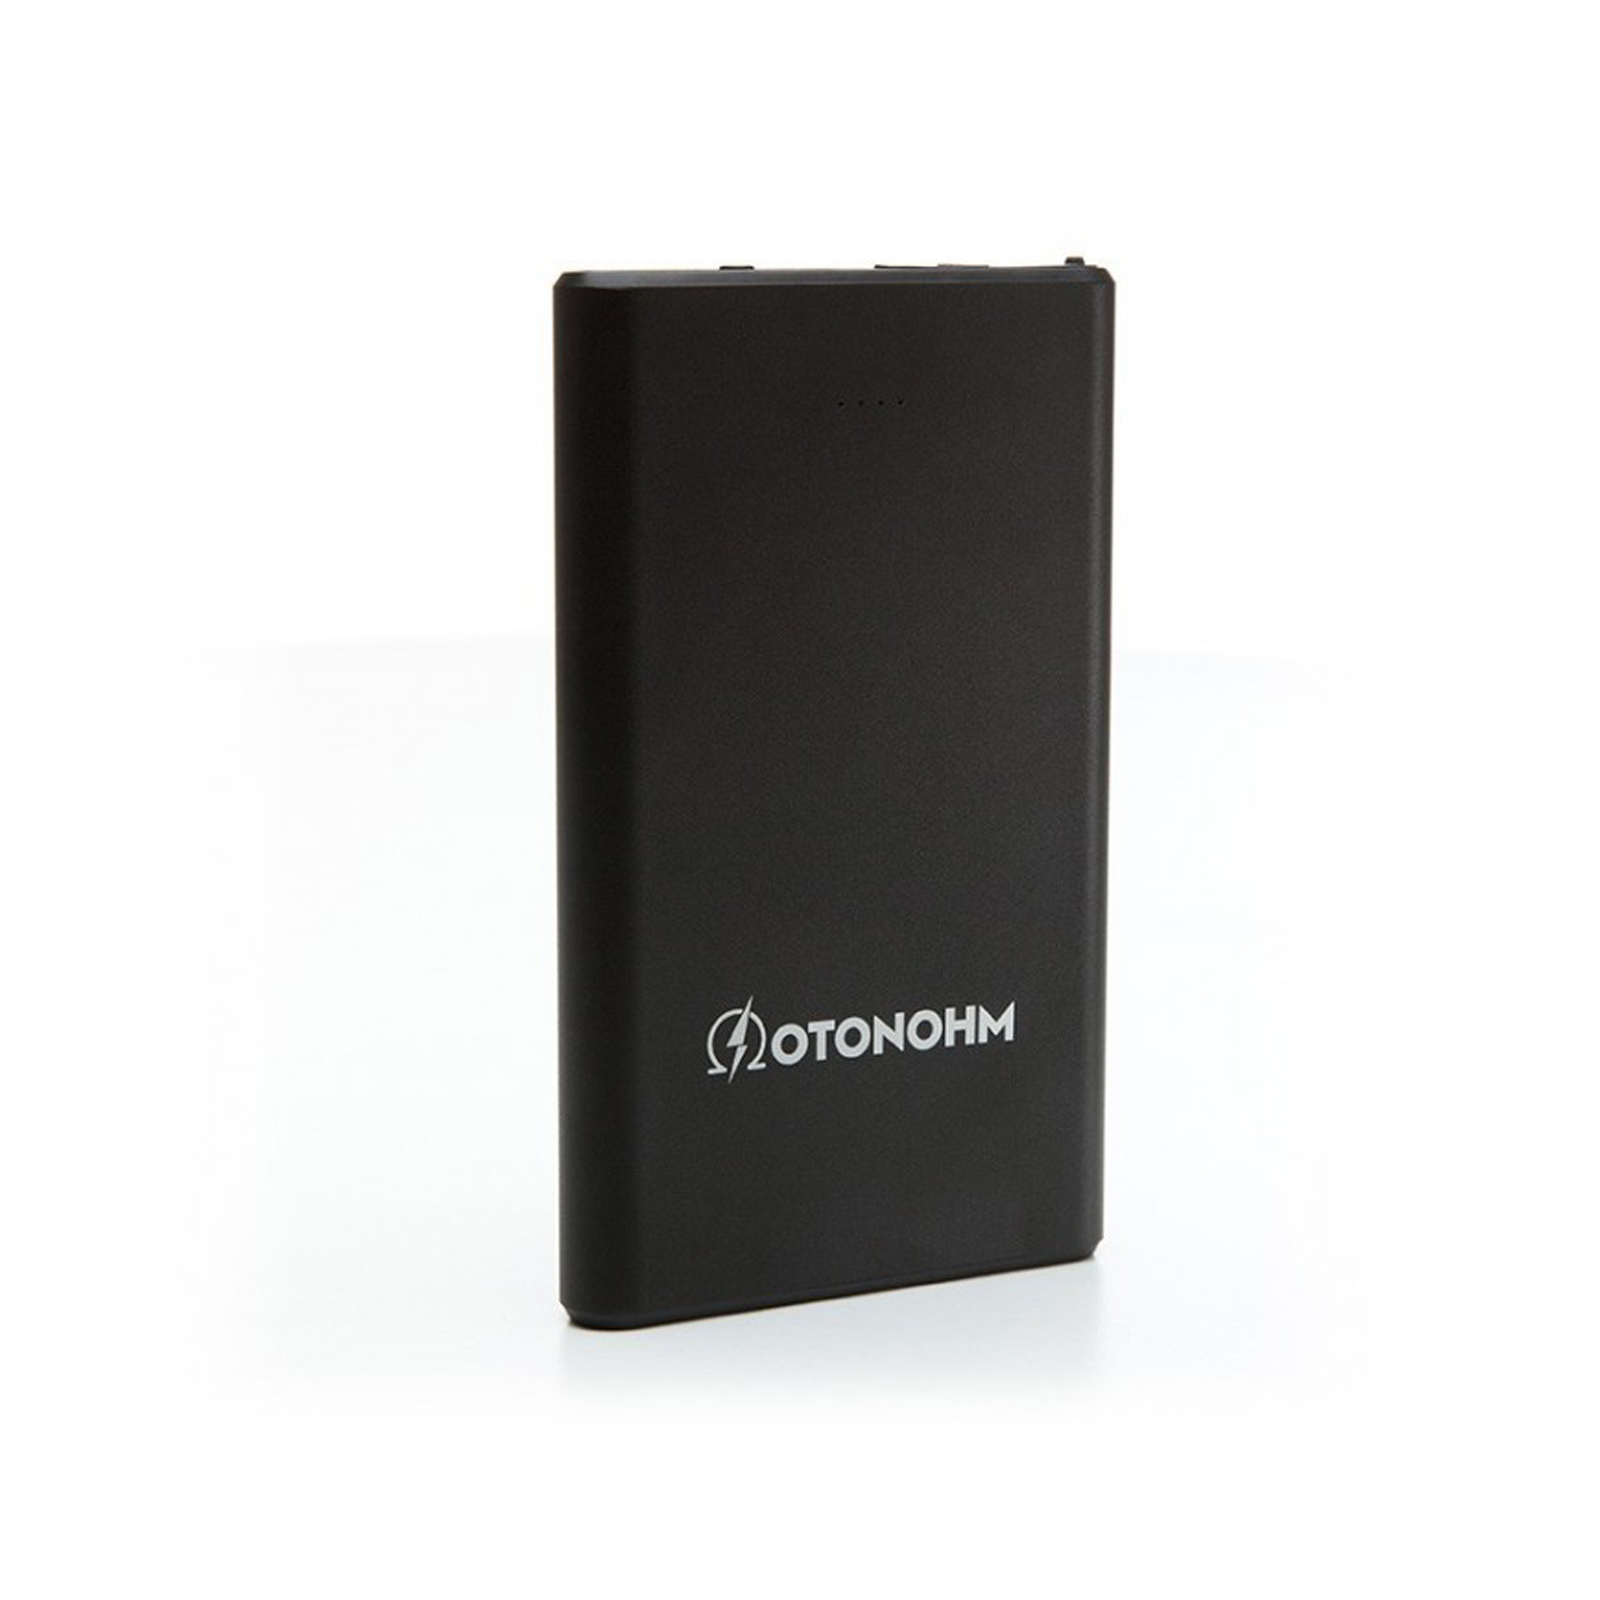 Otonohm booster batterie recharger powerbank panne